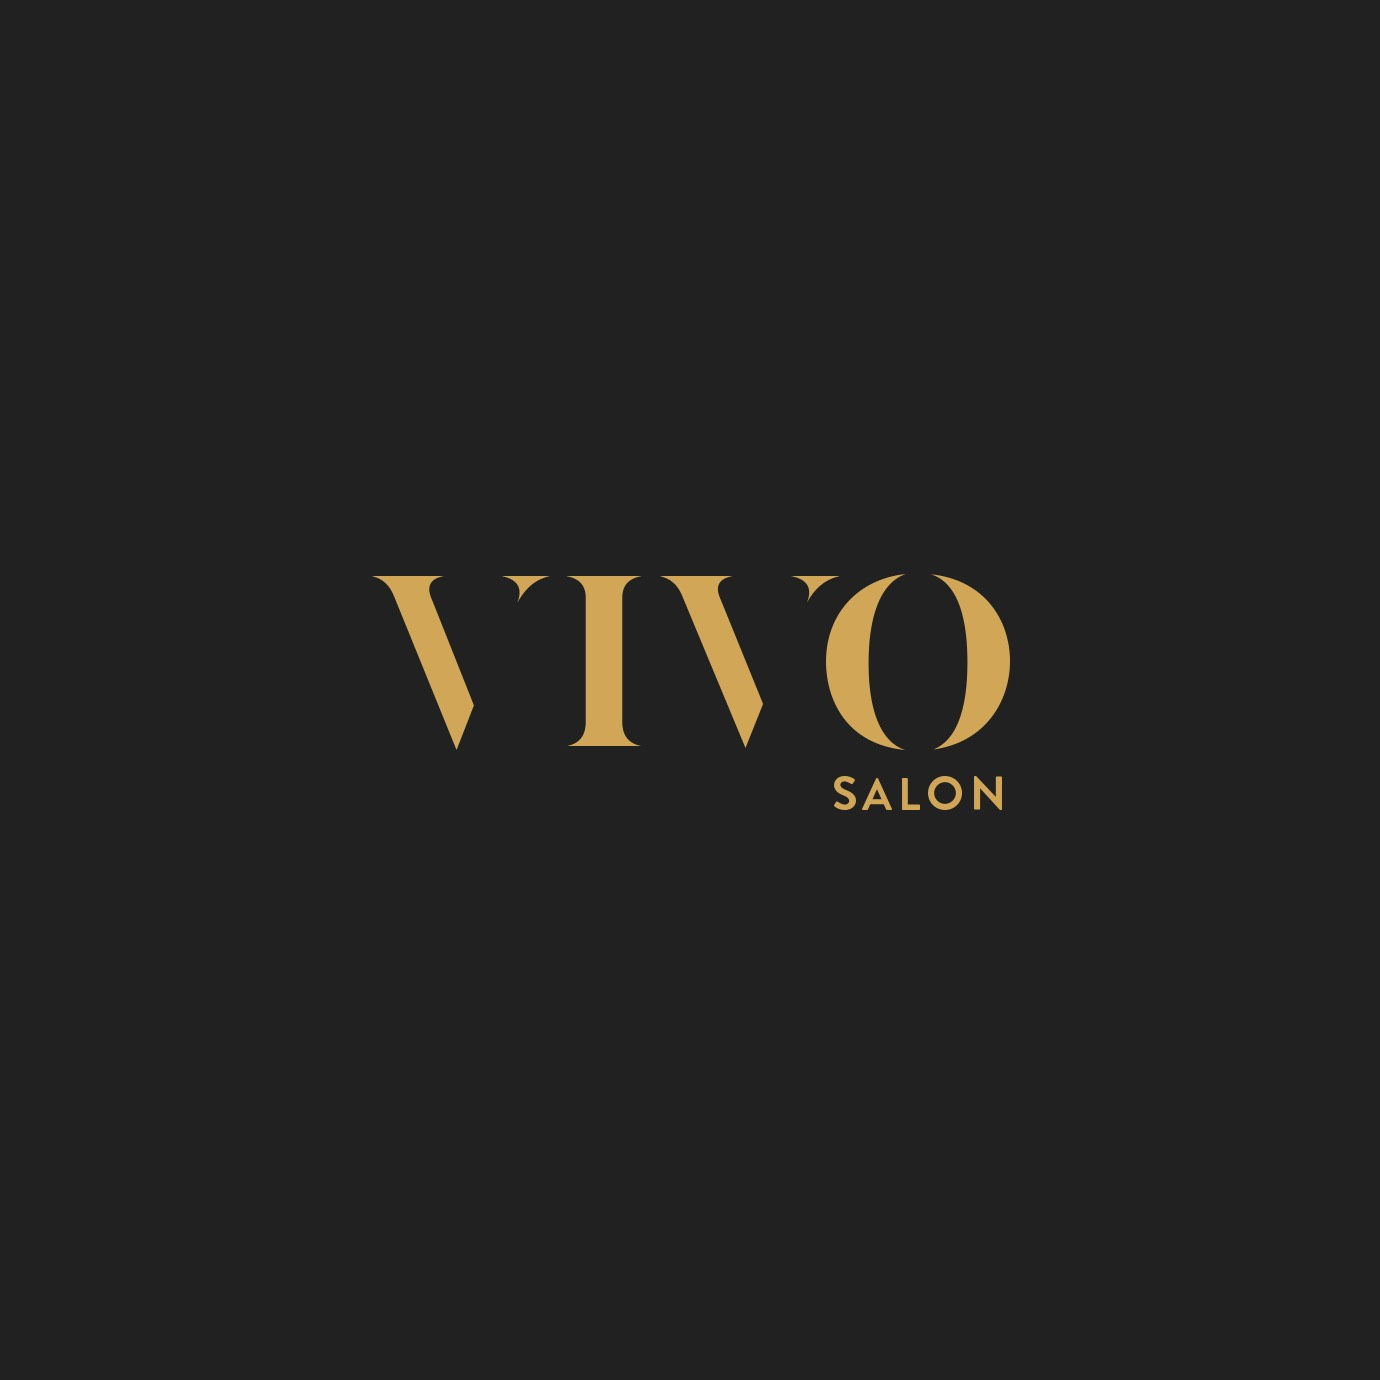 Vivo Salon